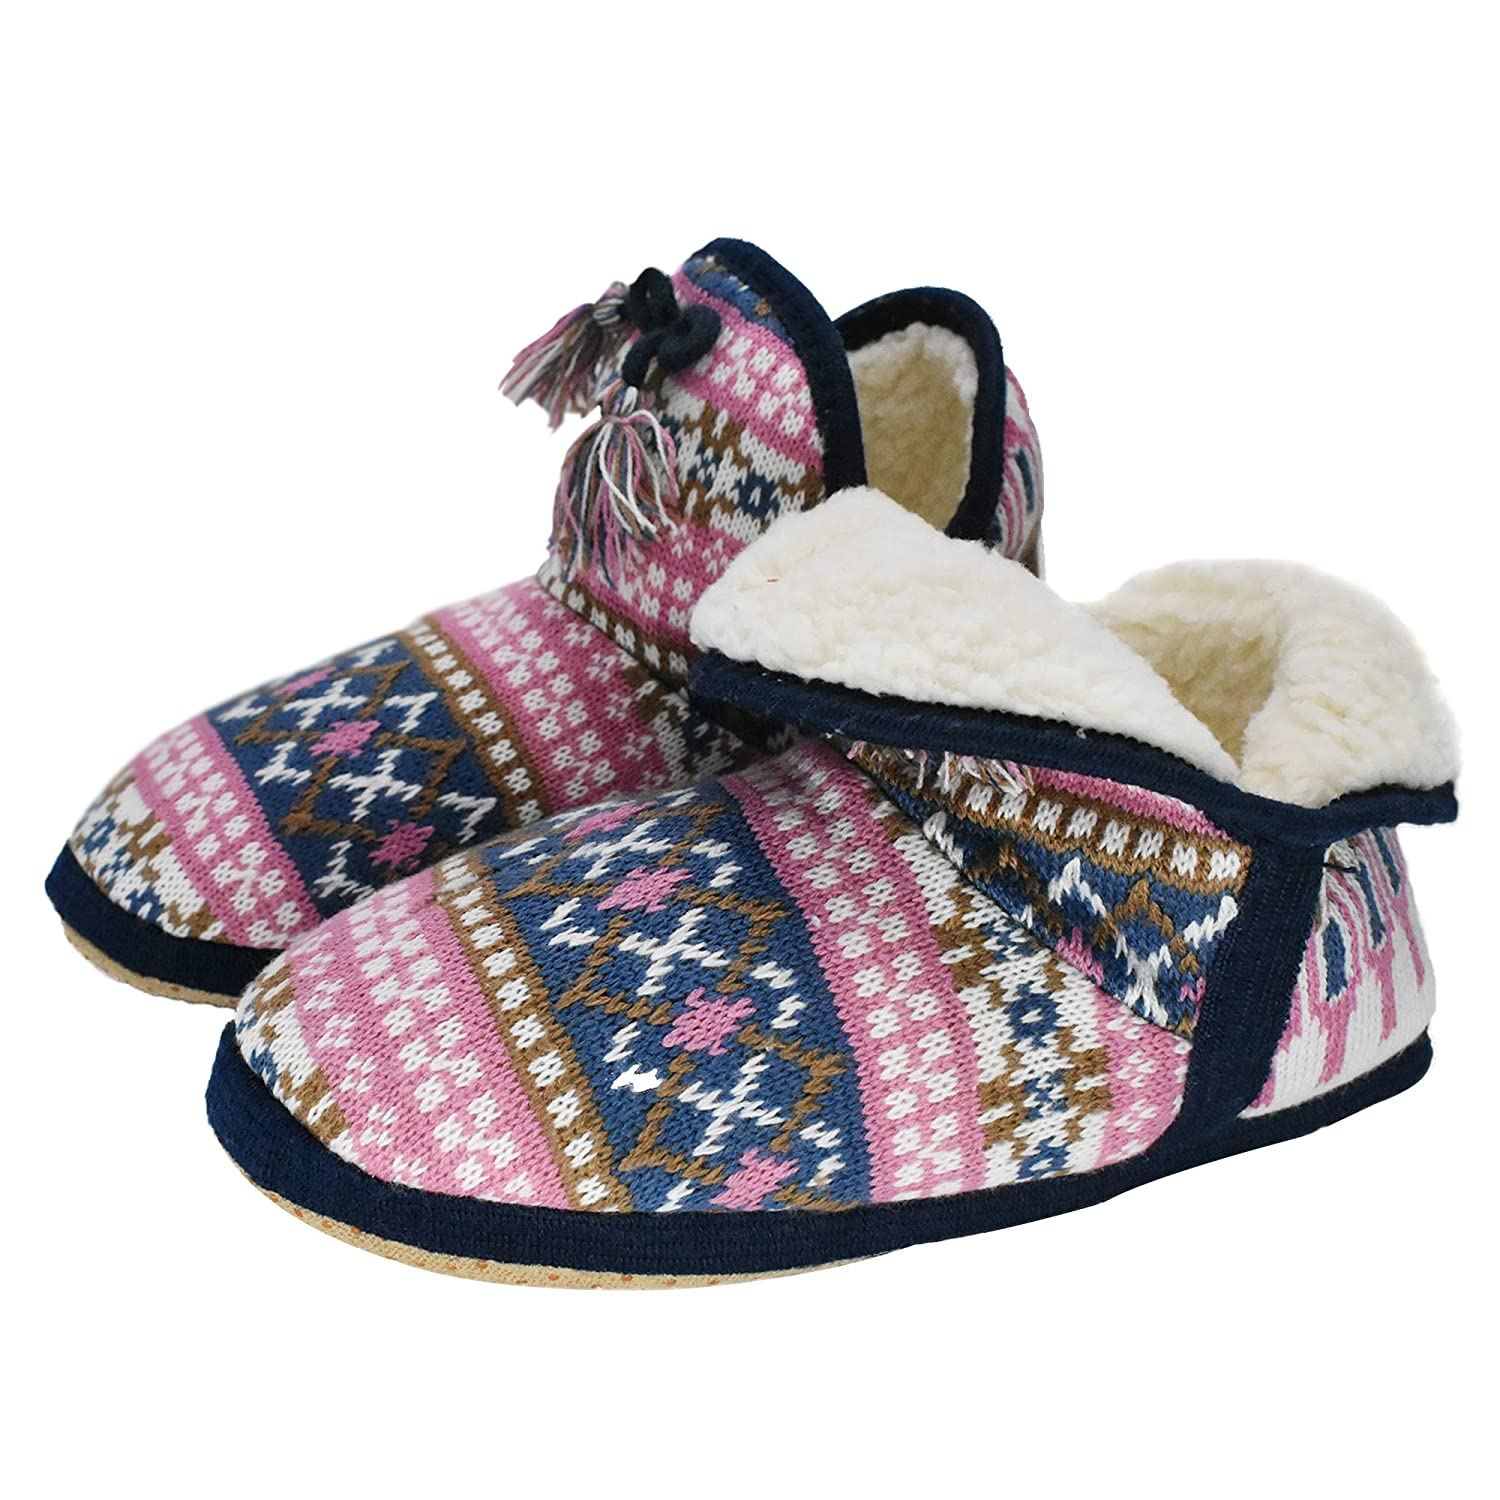 Q-Plus Women's Cashmere Knit House Slipper Booties Cotton Quilted Warm Indoor Ankle Boots